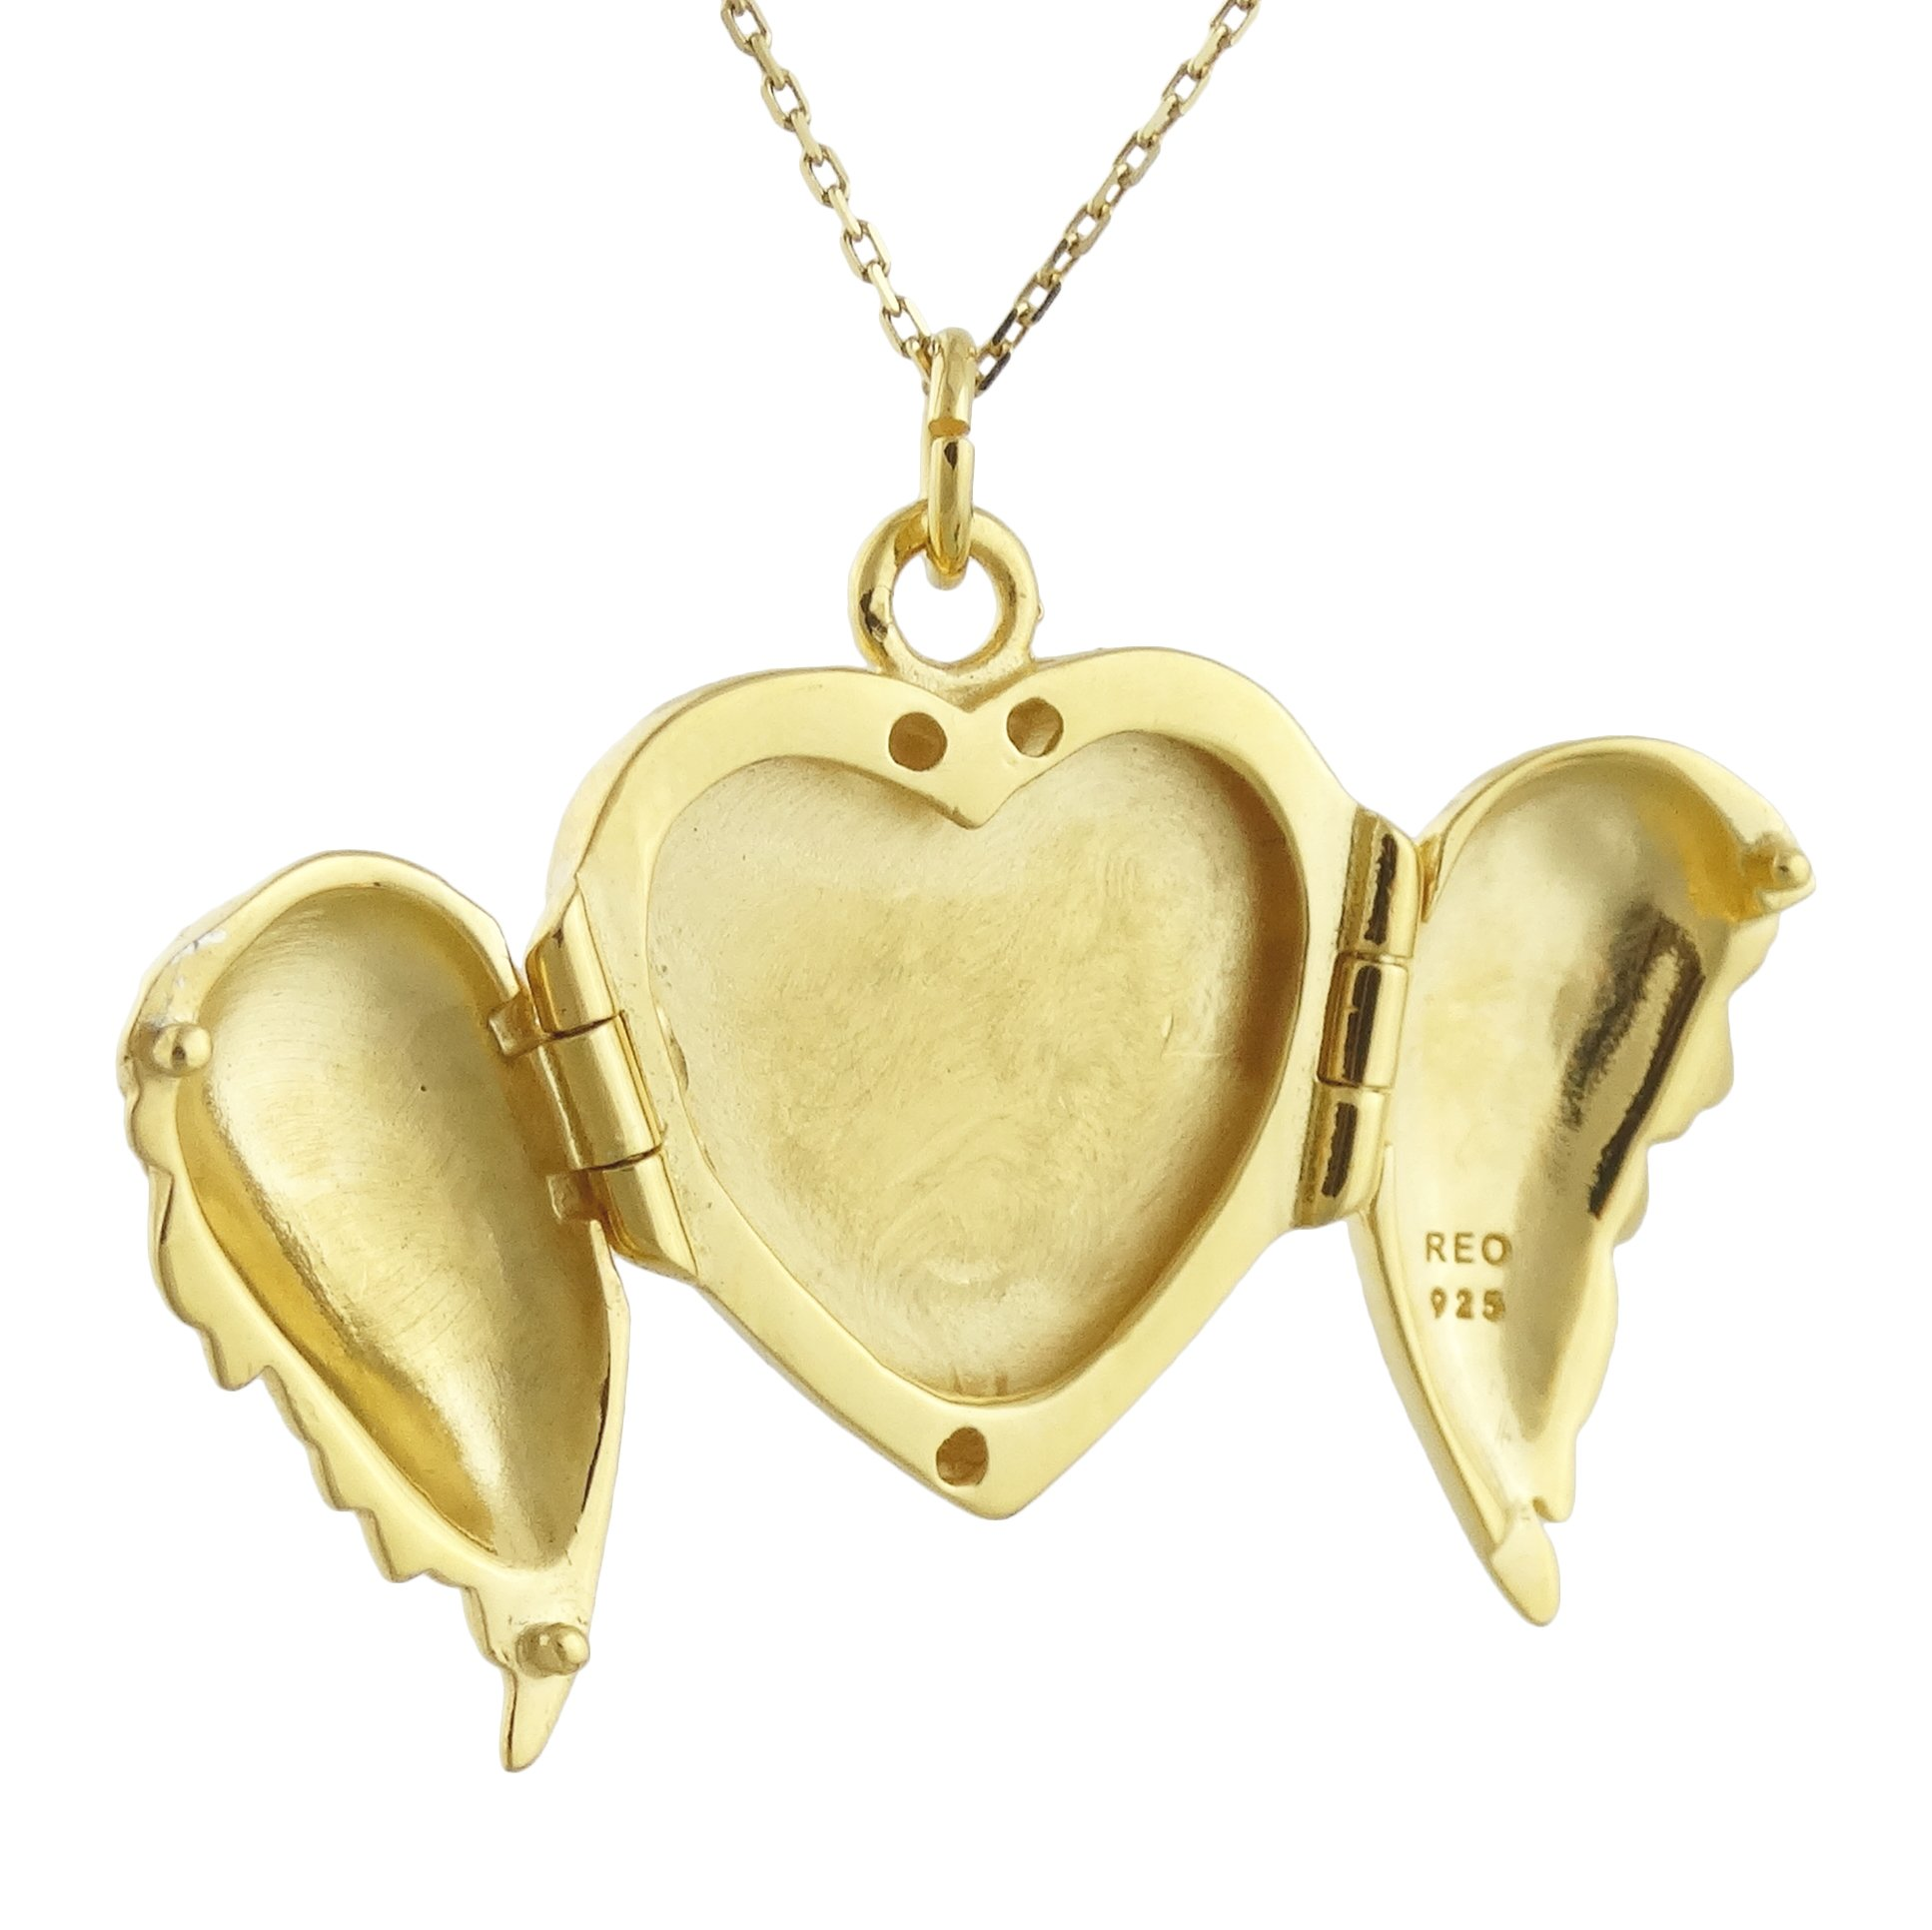 FashionJunkie4Life 18K Gold Plated Sterling Silver Angel Wings Heart Locket Necklace, 18'' Chain by FashionJunkie4Life (Image #2)